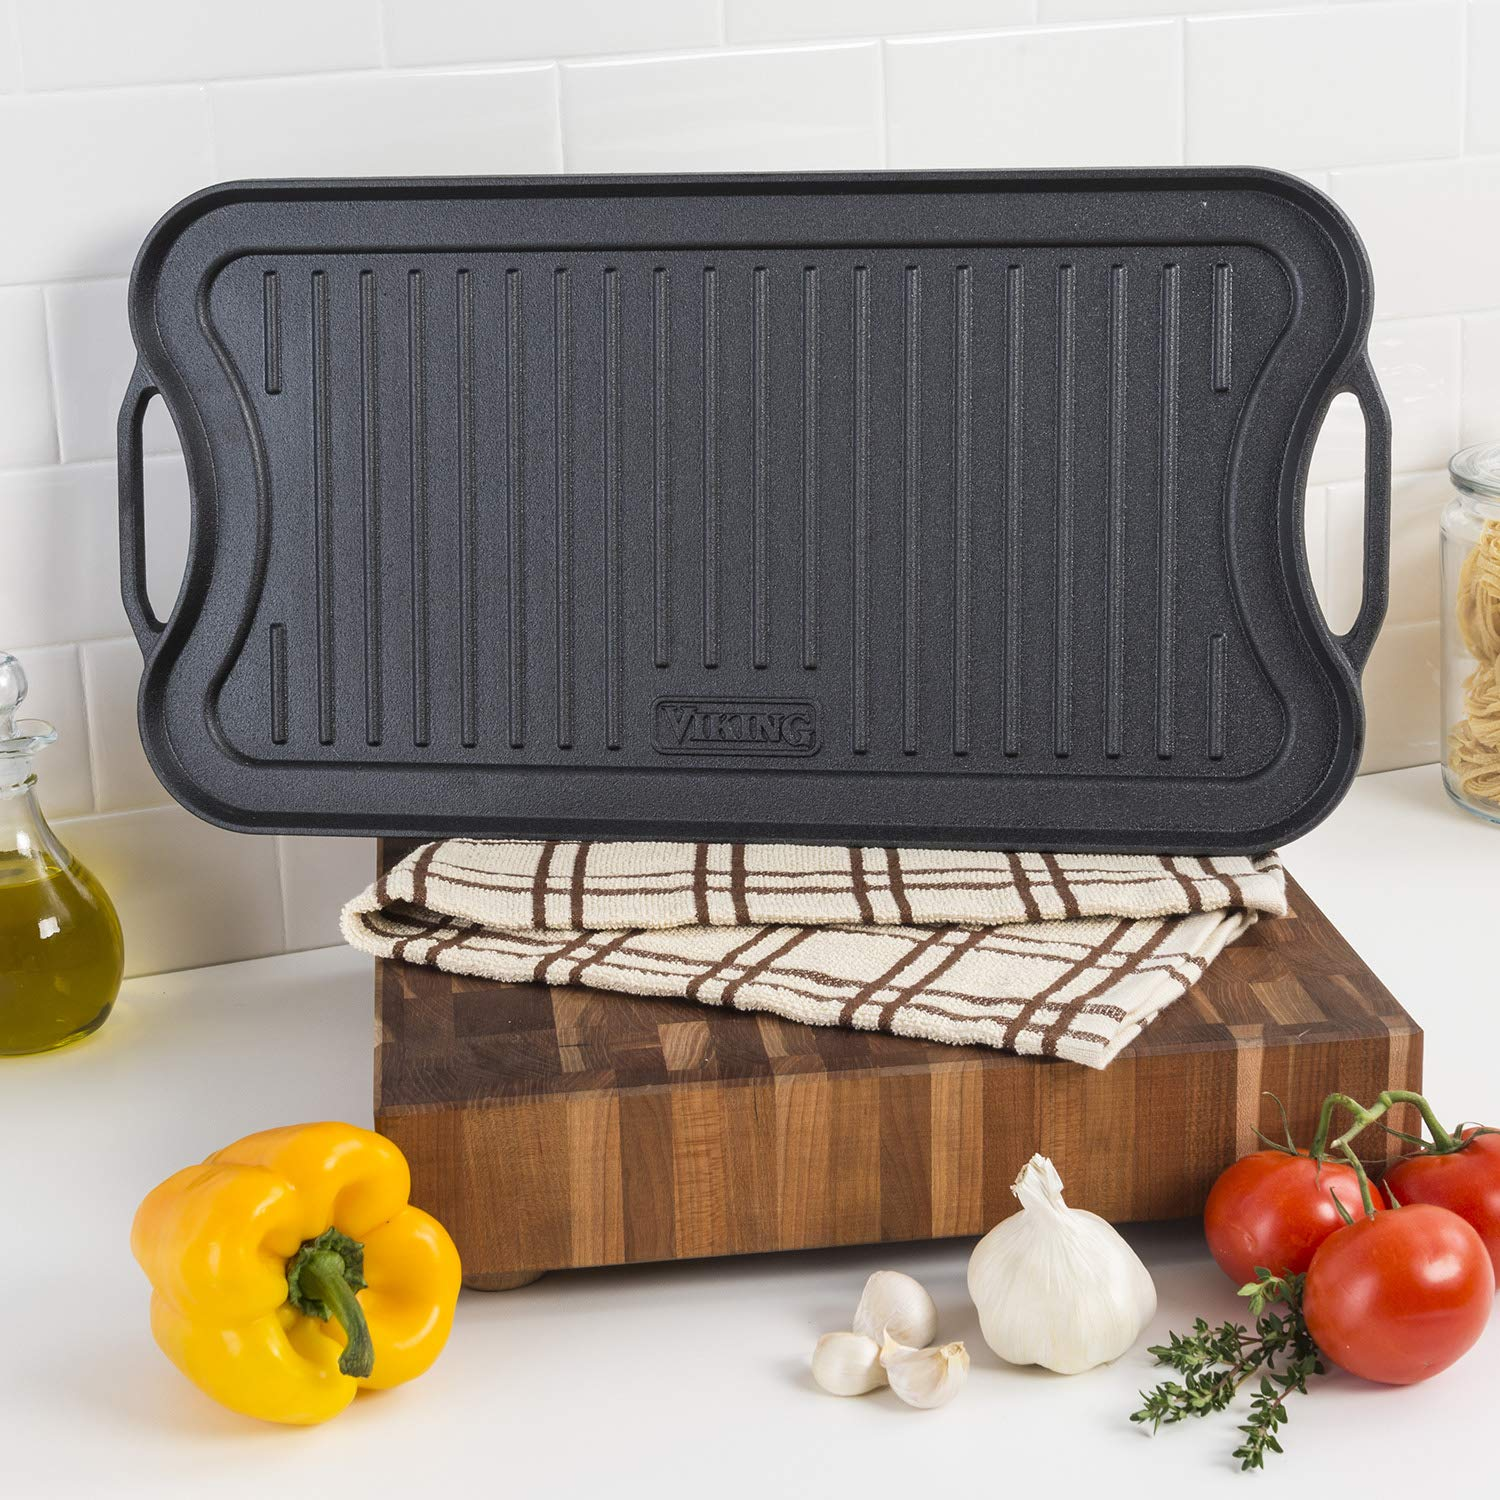 Viking Enamel Cast Iron Reversable Grill and Griddle Pan, 20 Inch by Viking Culinary (Image #4)